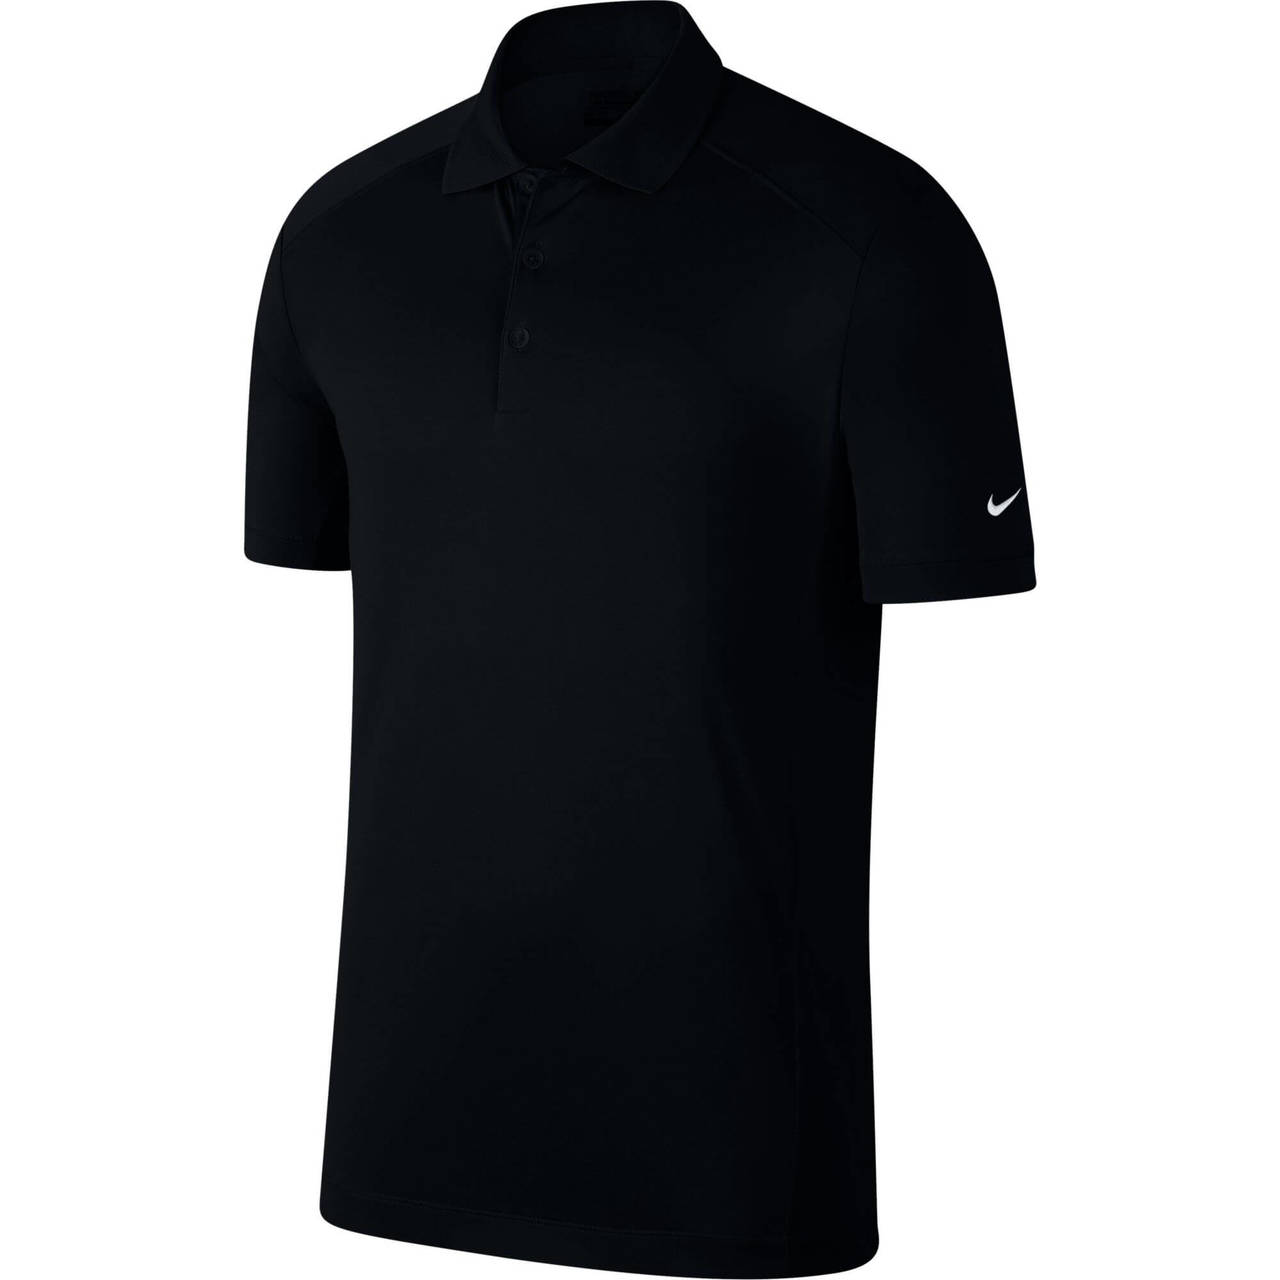 e7e58ec0 Shop Nike Dri-FIT Victory Solid Men's Golf Polo | GLW